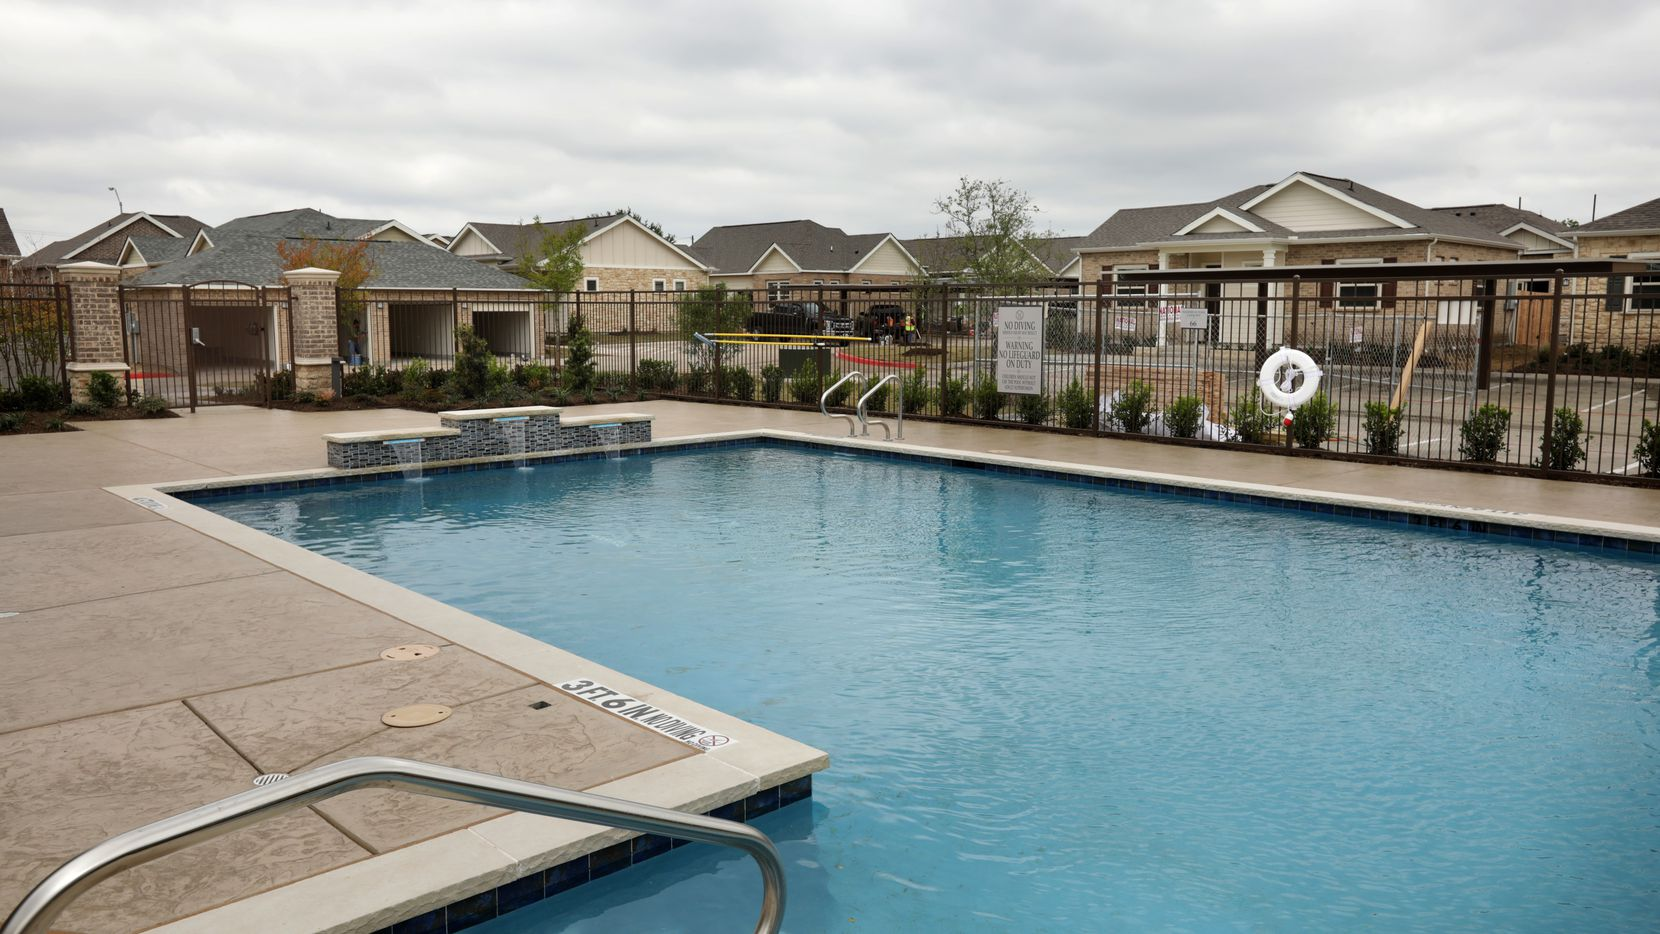 The Avilla rental home community in McKinney includes a pool and community center.